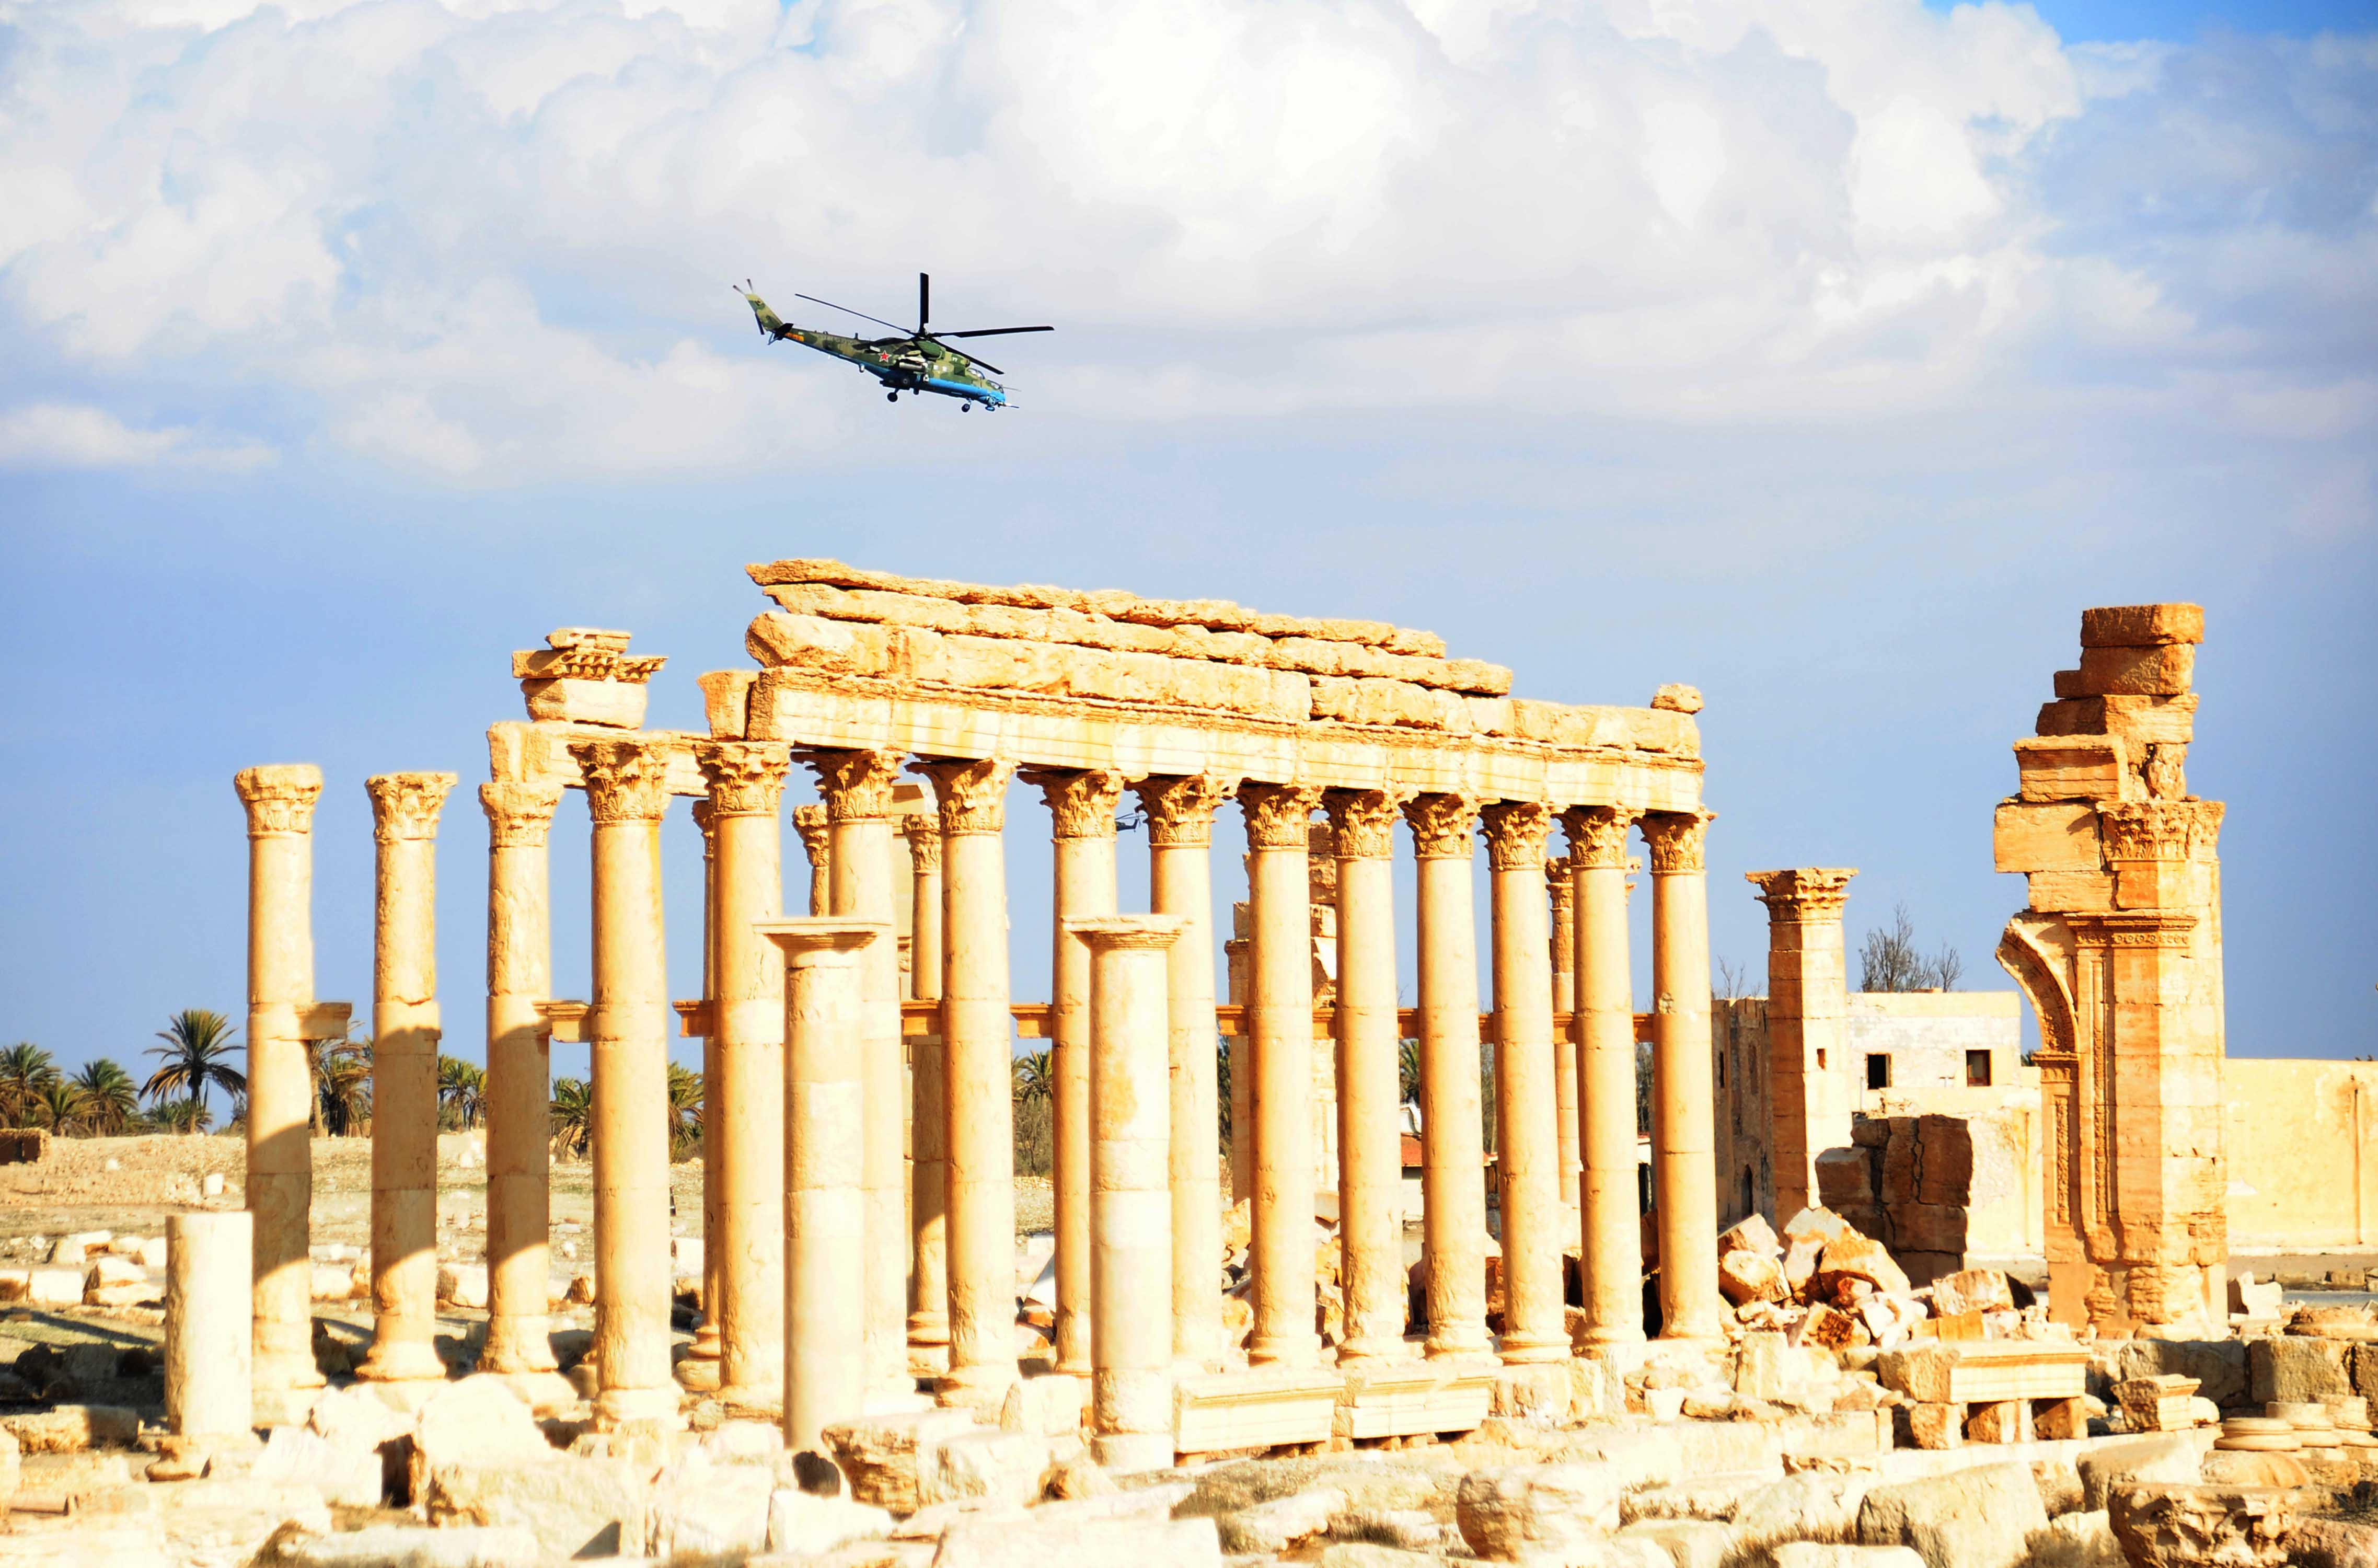 PALMYRA, March 5, 2017 A Russian helicopter hovers over the ancient city of Palmyra, central Syria, on March 4, 2017. The Syrian army announced in a statement that the Syrian forces captured the ancient city of Palmyra in central Syria on Thursday after battles with the Islamic State (IS) group. gj) (Credit Image: Global Look Press via ZUMA Press)